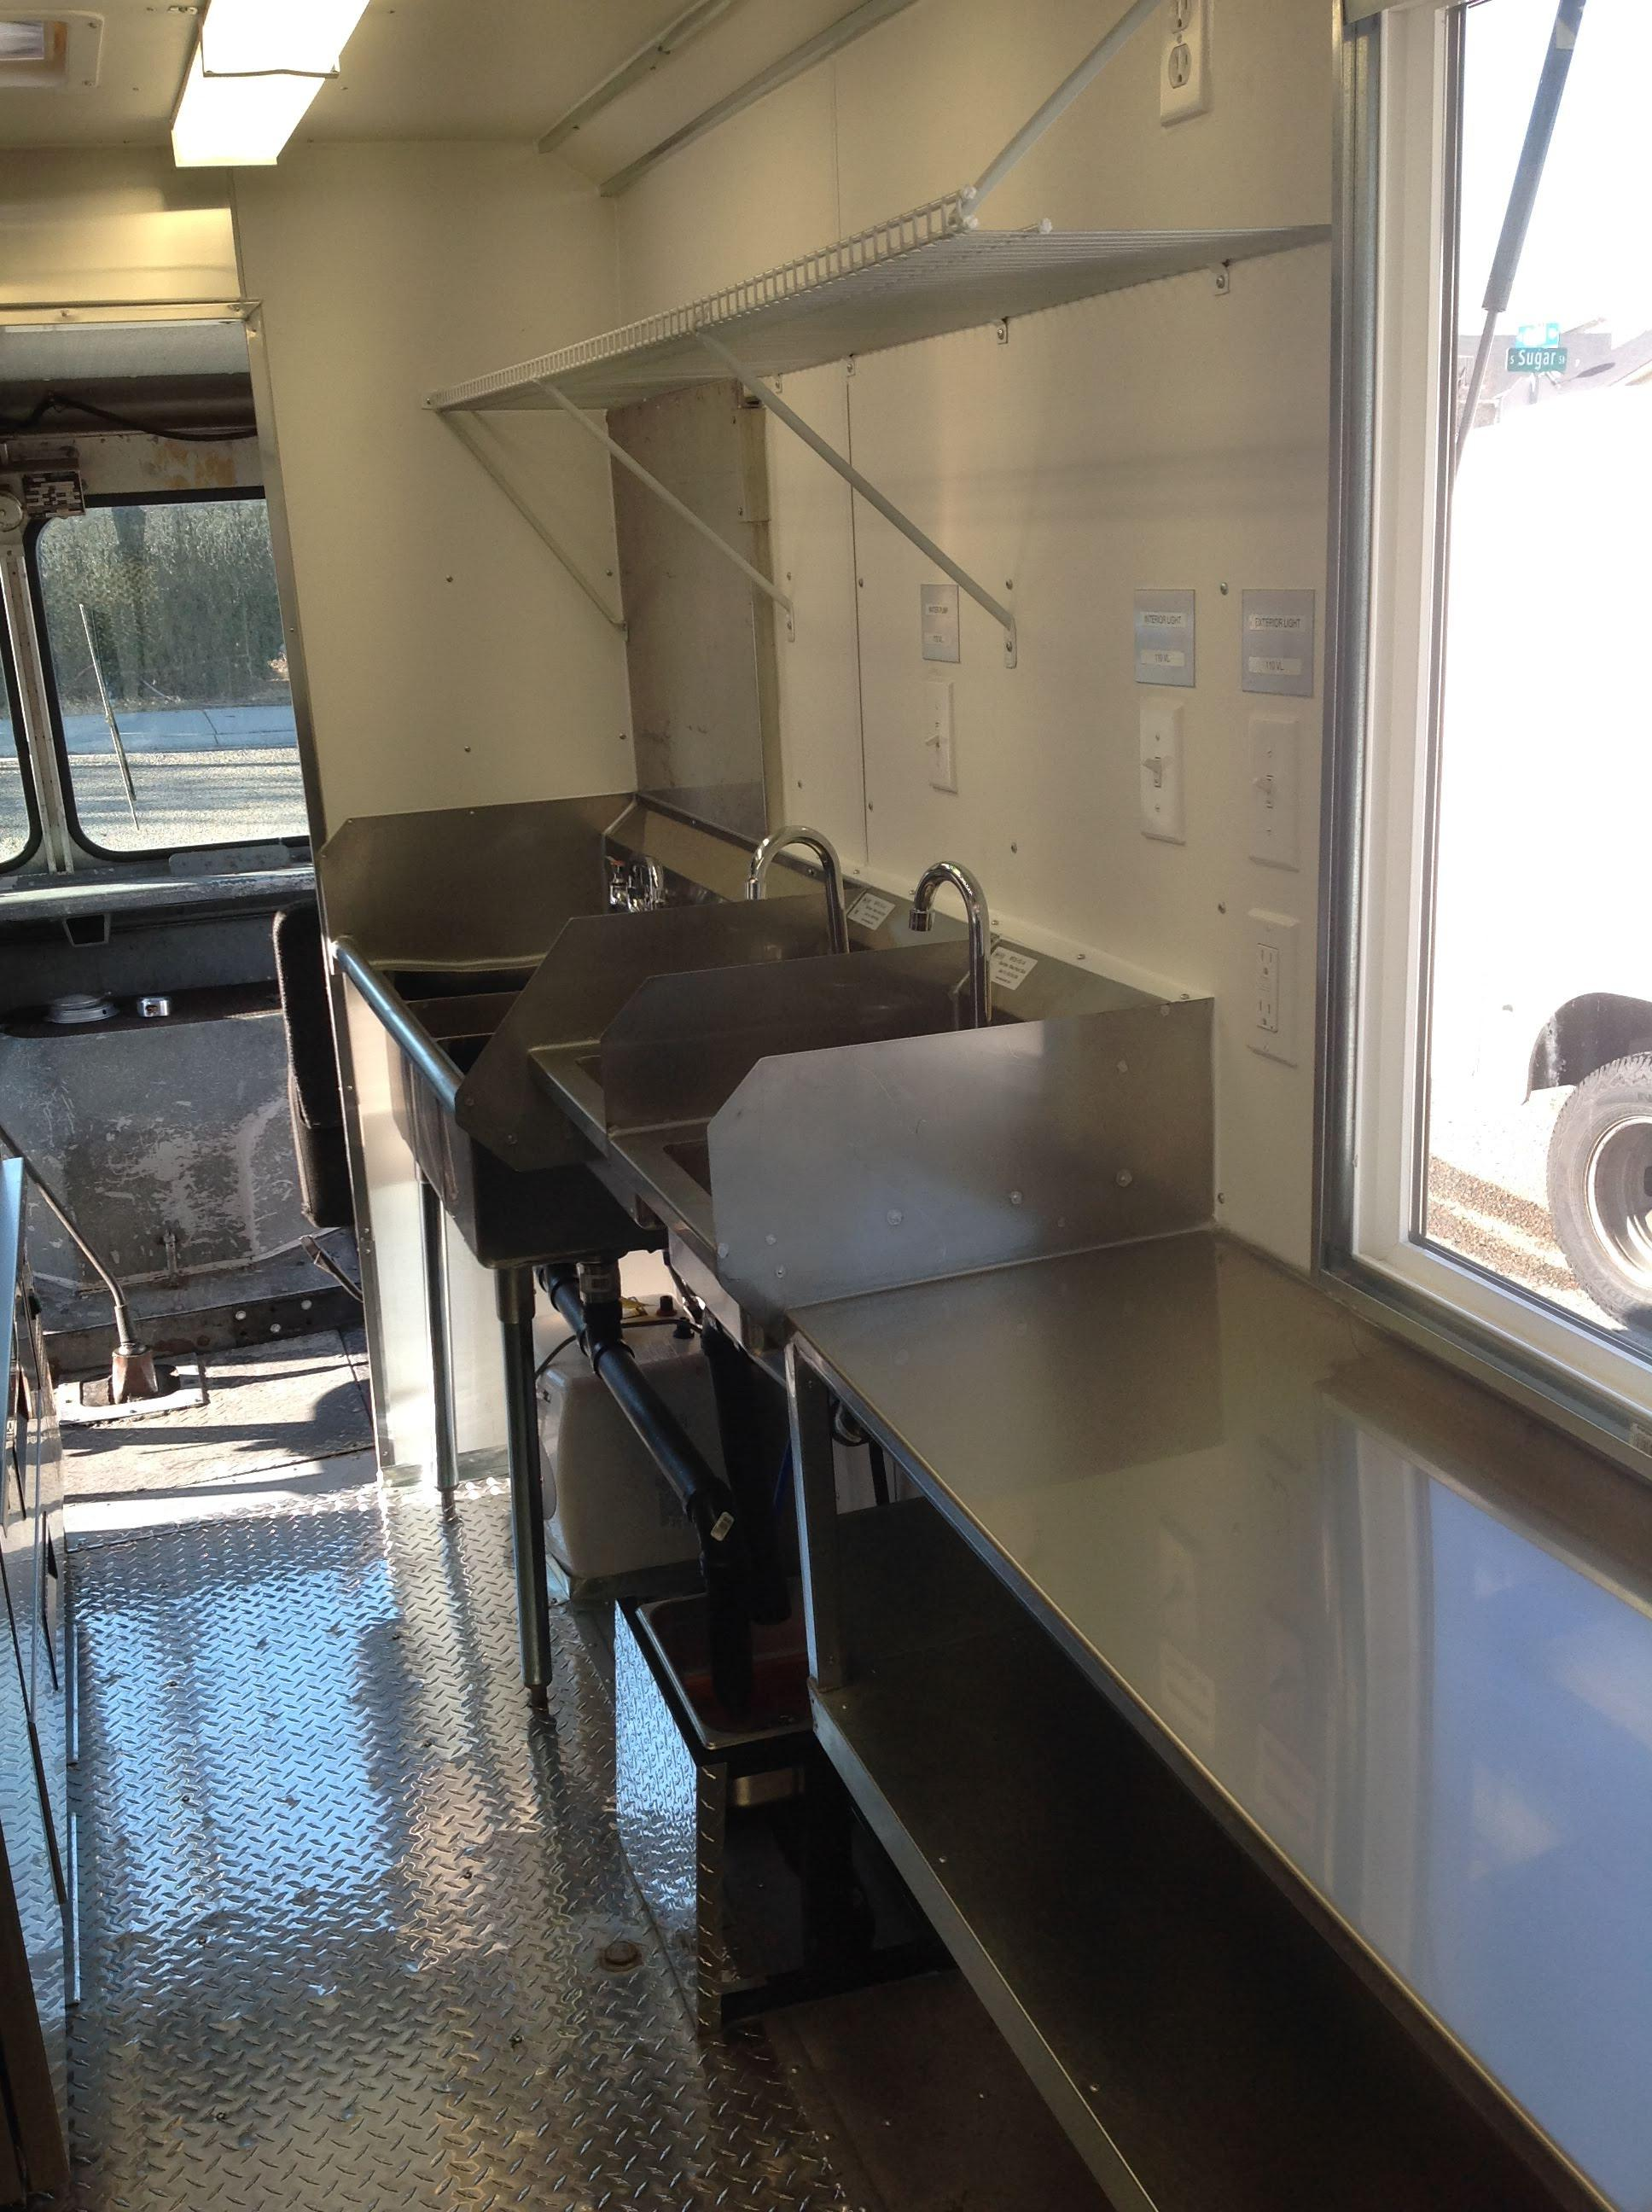 Boise Foodtruck Interior Kitchen to Code